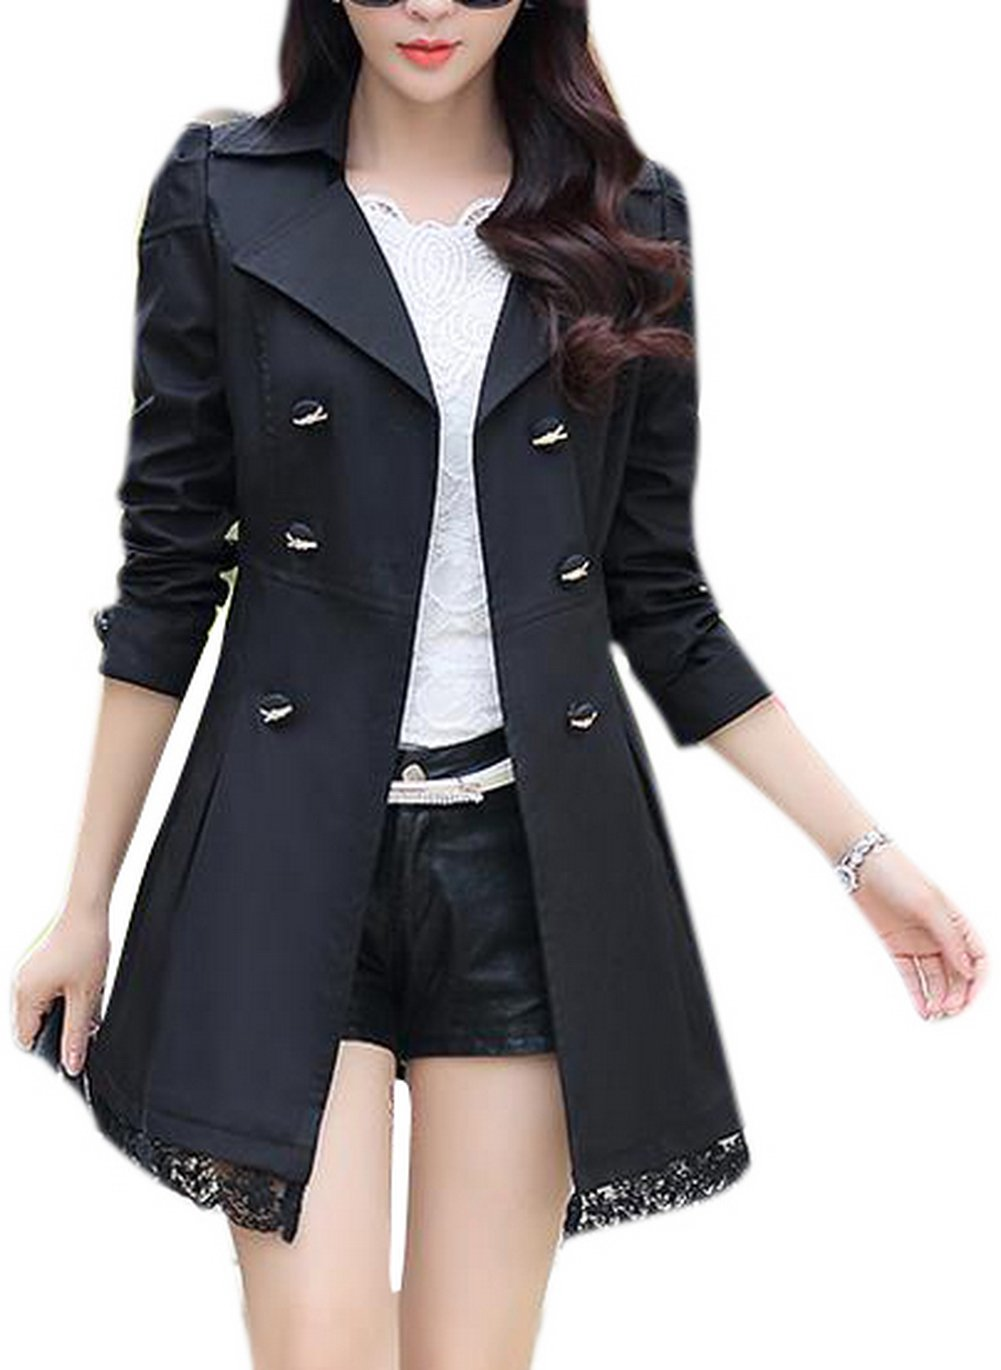 Lingswallow Women's Elegant Double Breasted Lace Hem Trench Coat Jacket Black